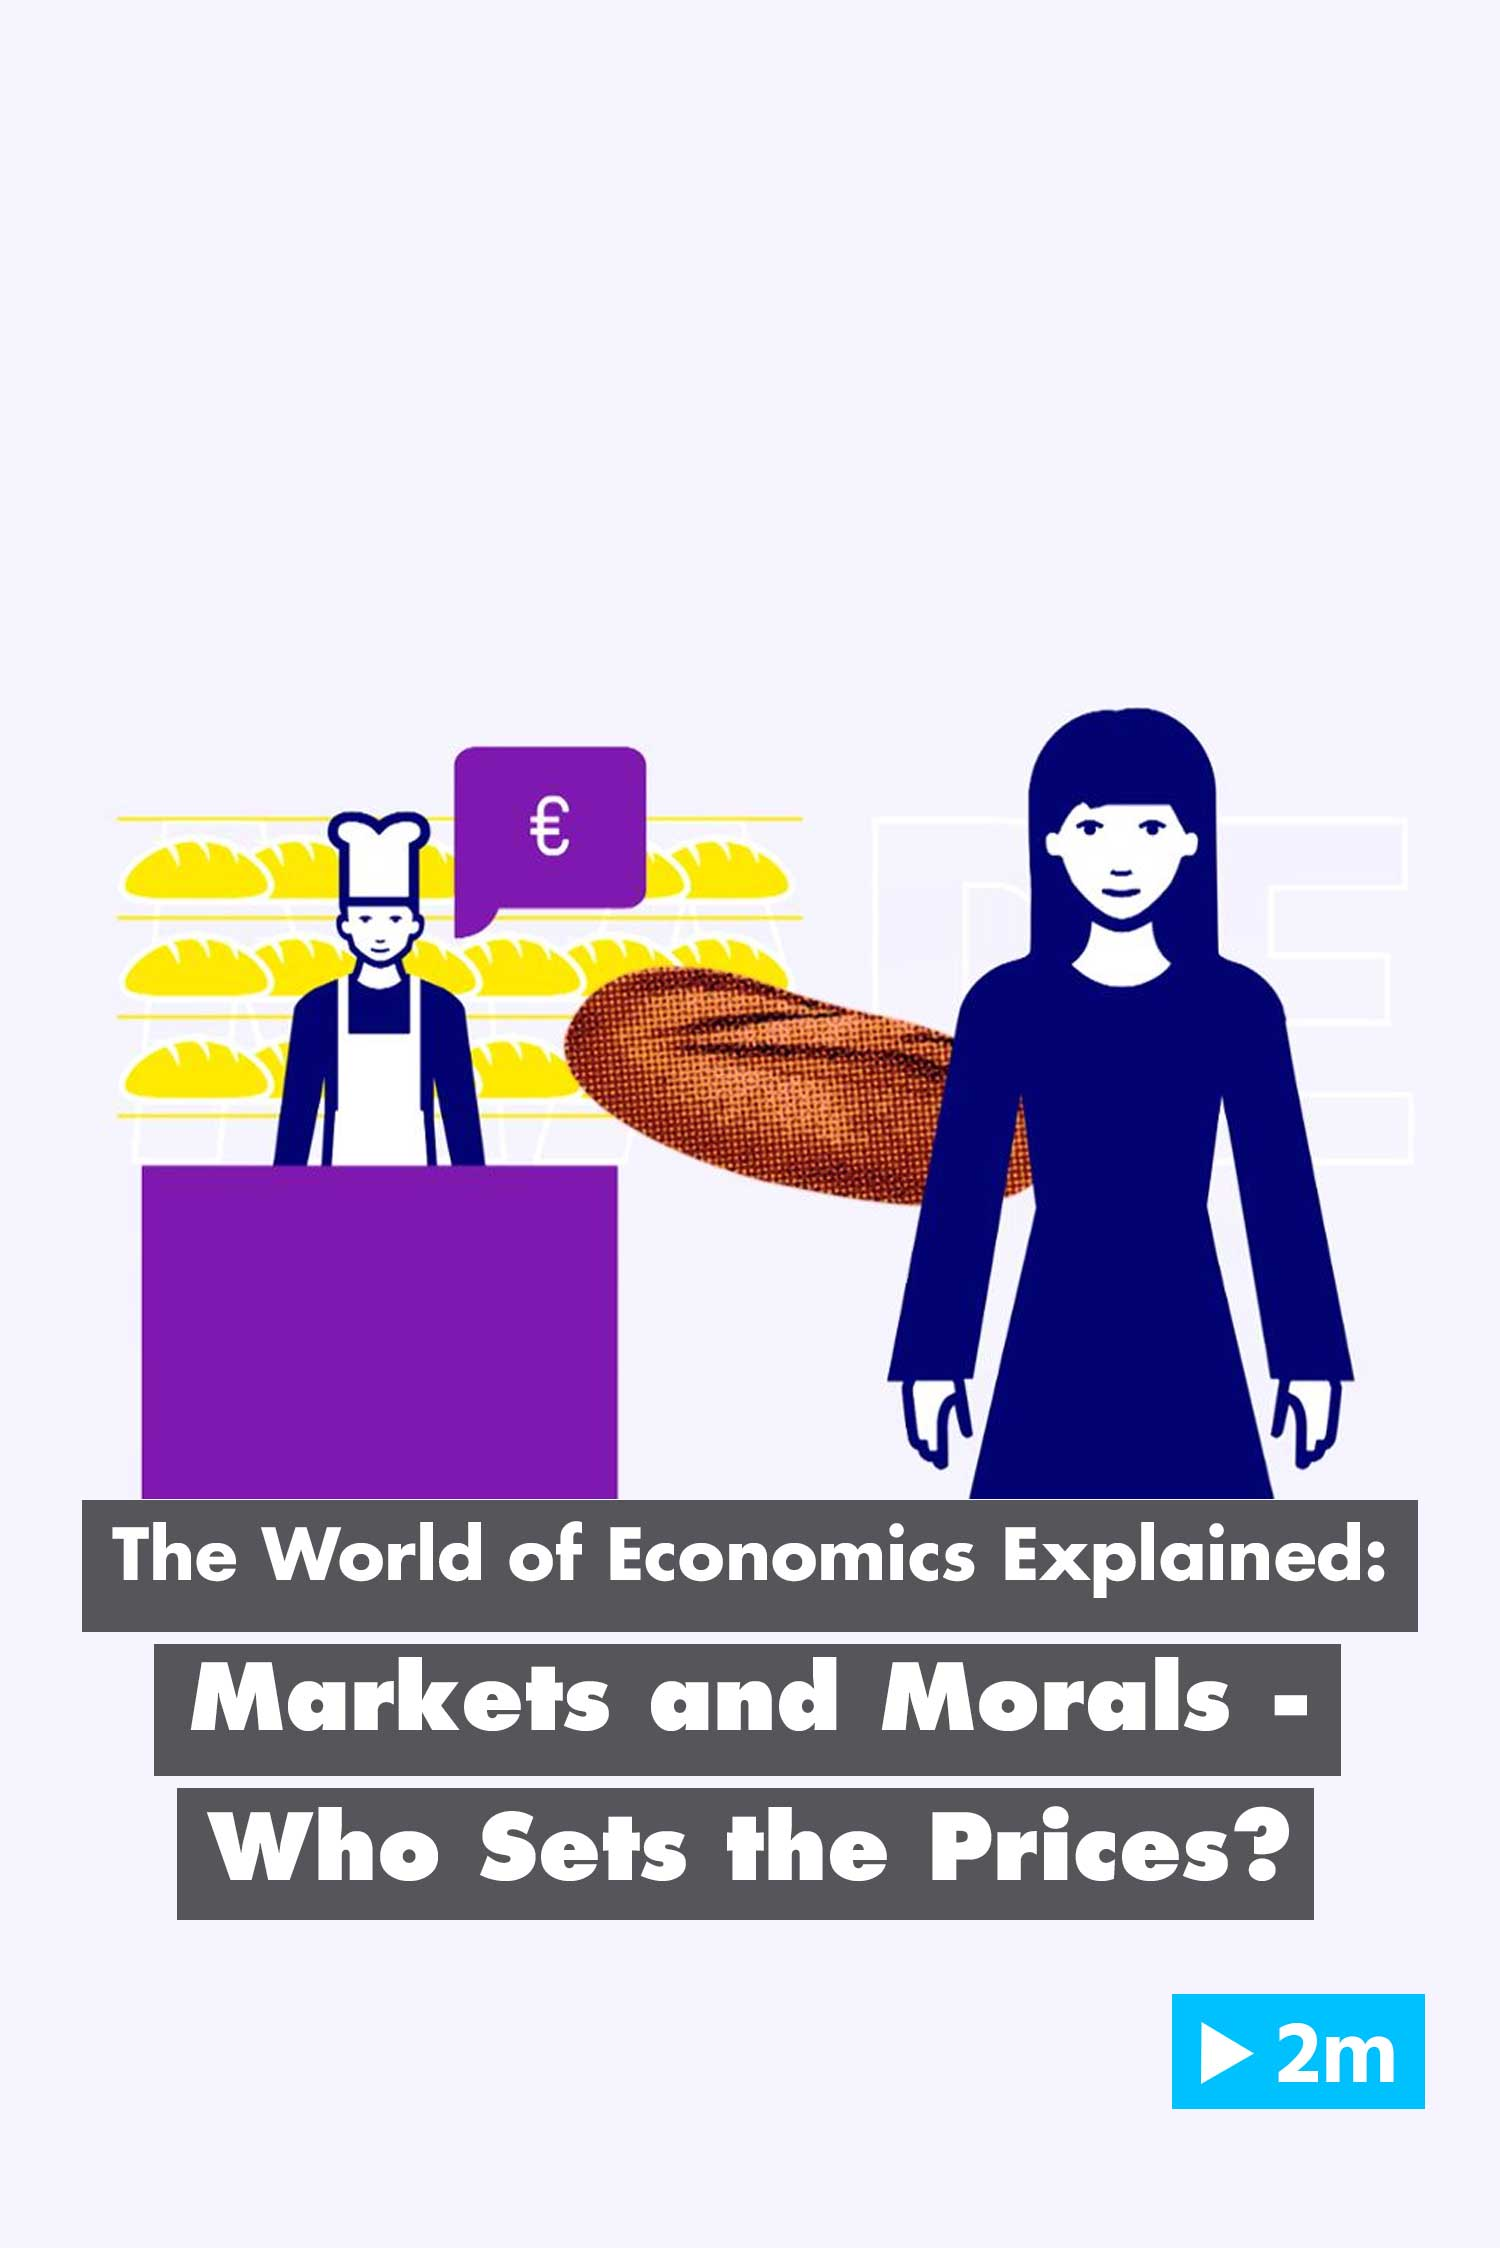 The world of Economics Explained: Markets and morals - who sets the prices